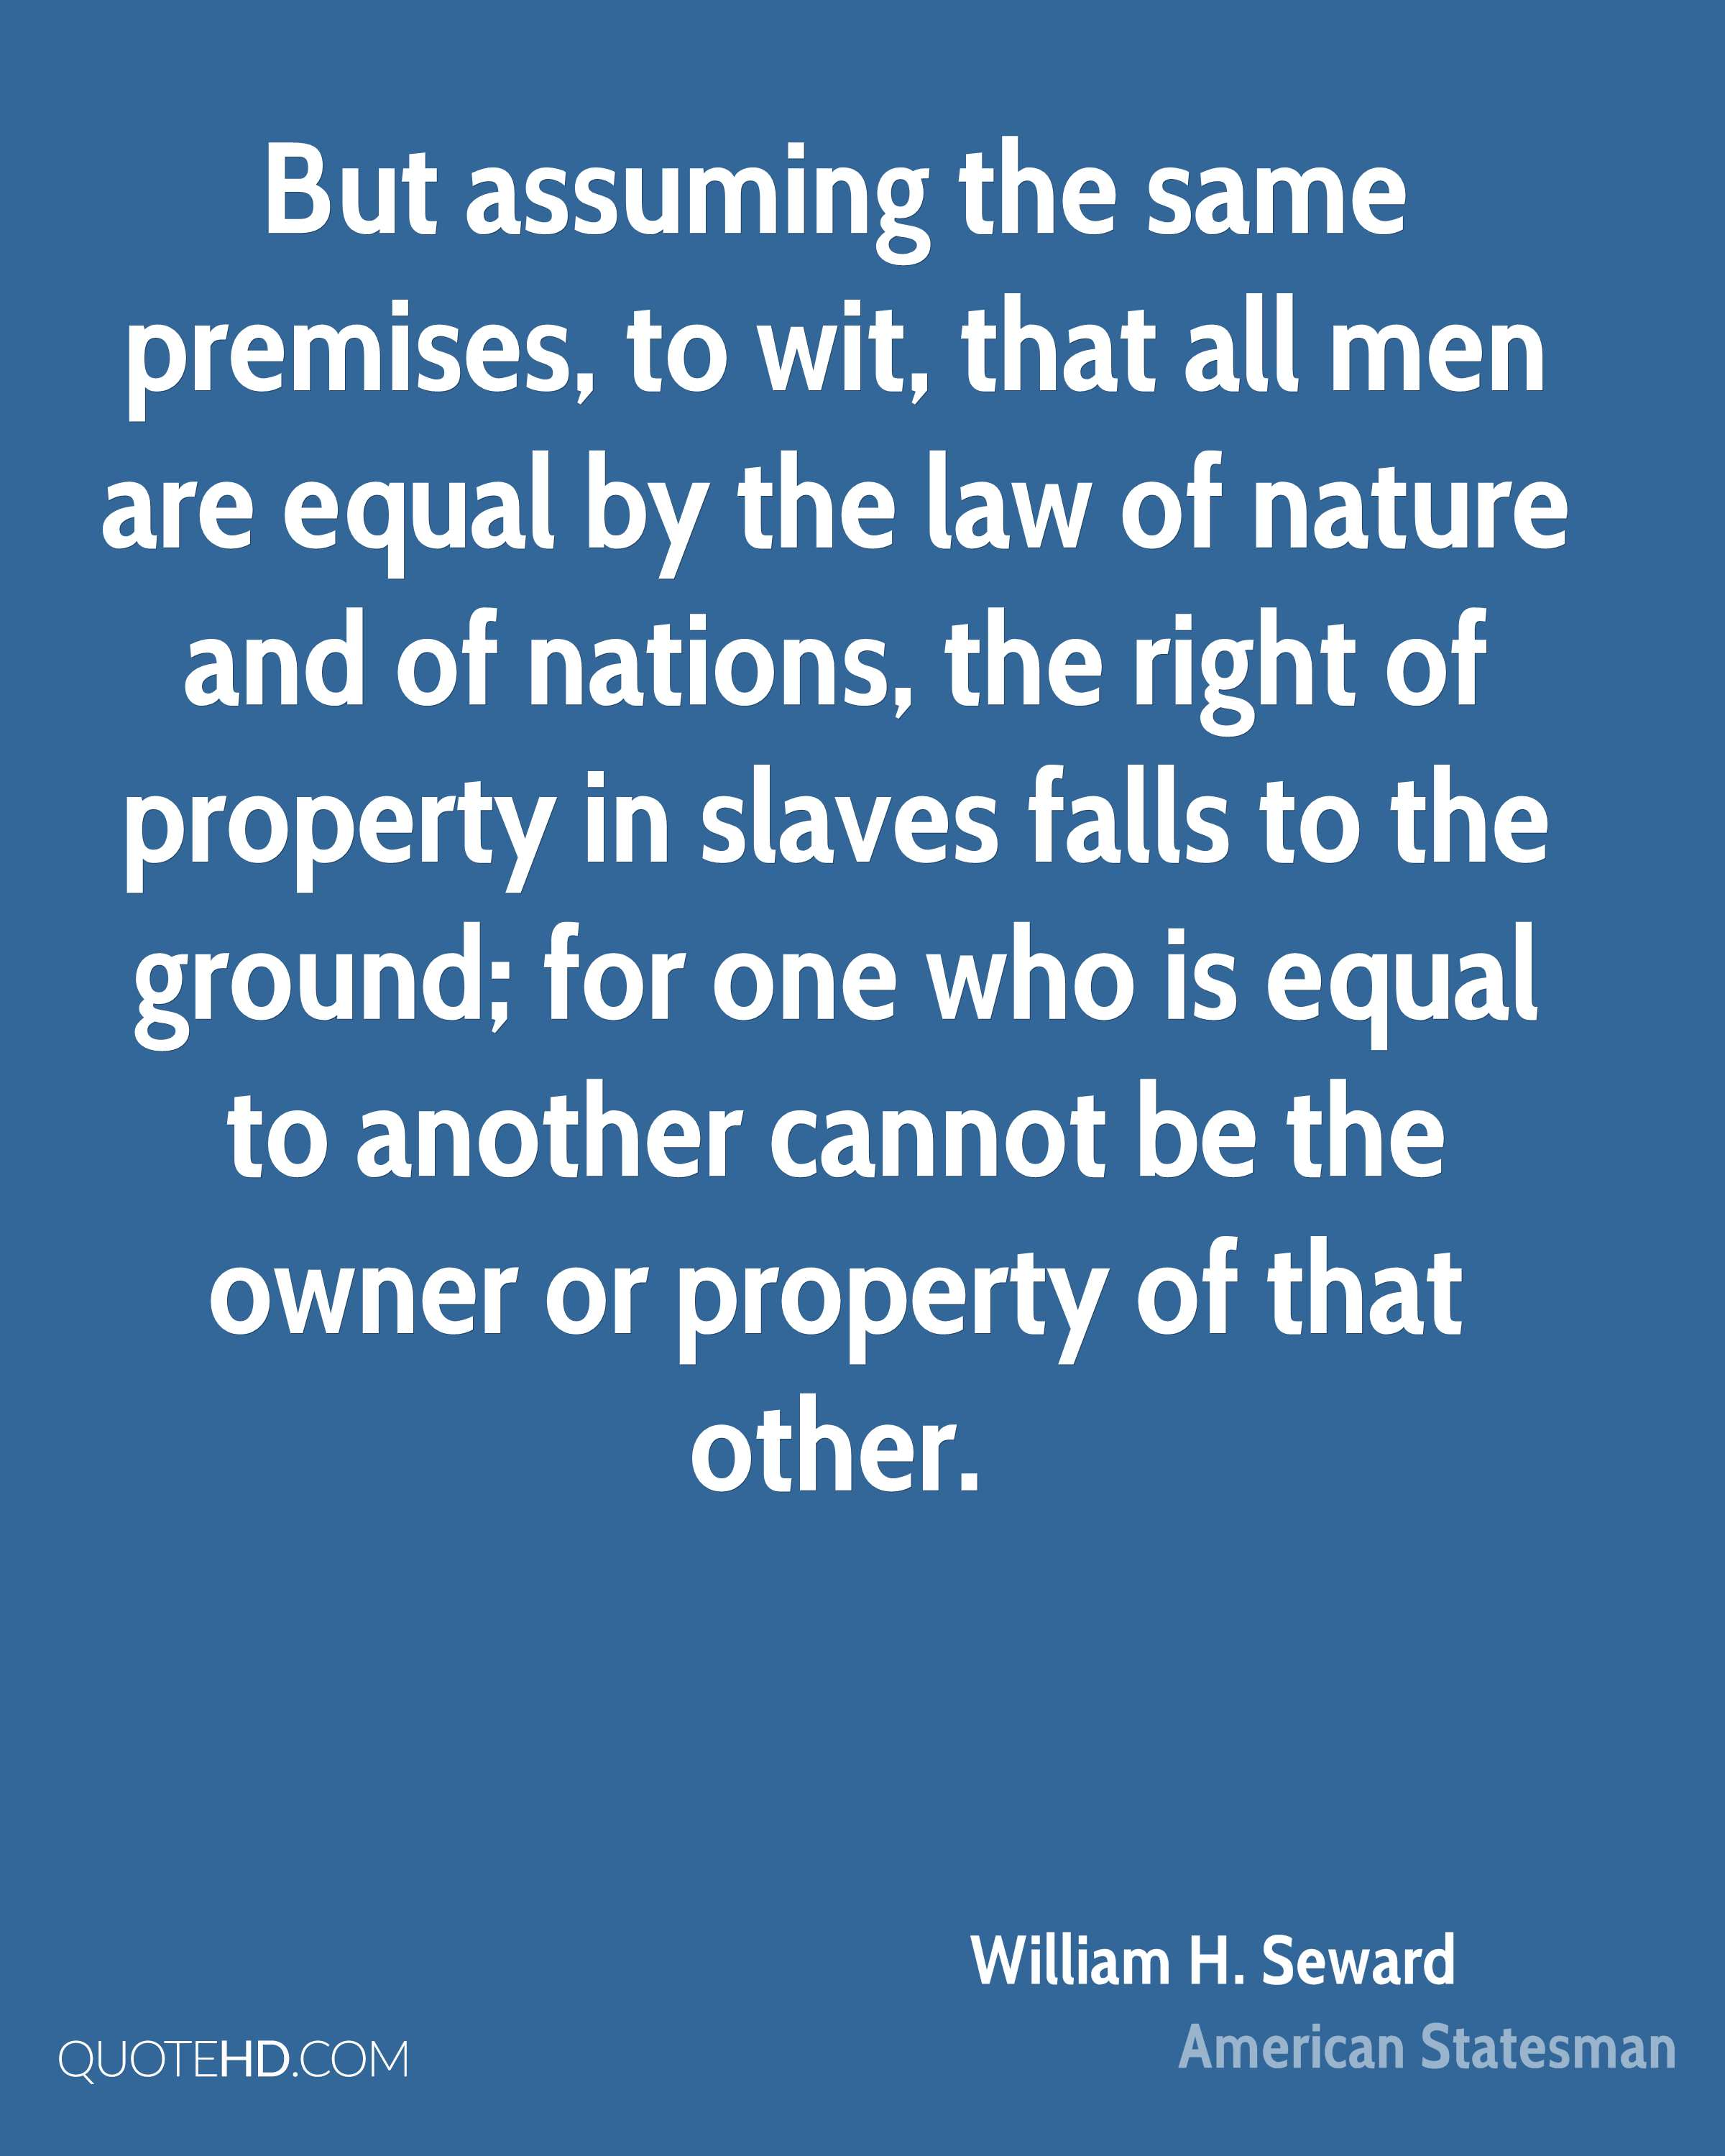 But assuming the same premises, to wit, that all men are equal by the law of nature and of nations, the right of property in slaves falls to the ground; for one who is equal to another cannot be the owner or property of that other.